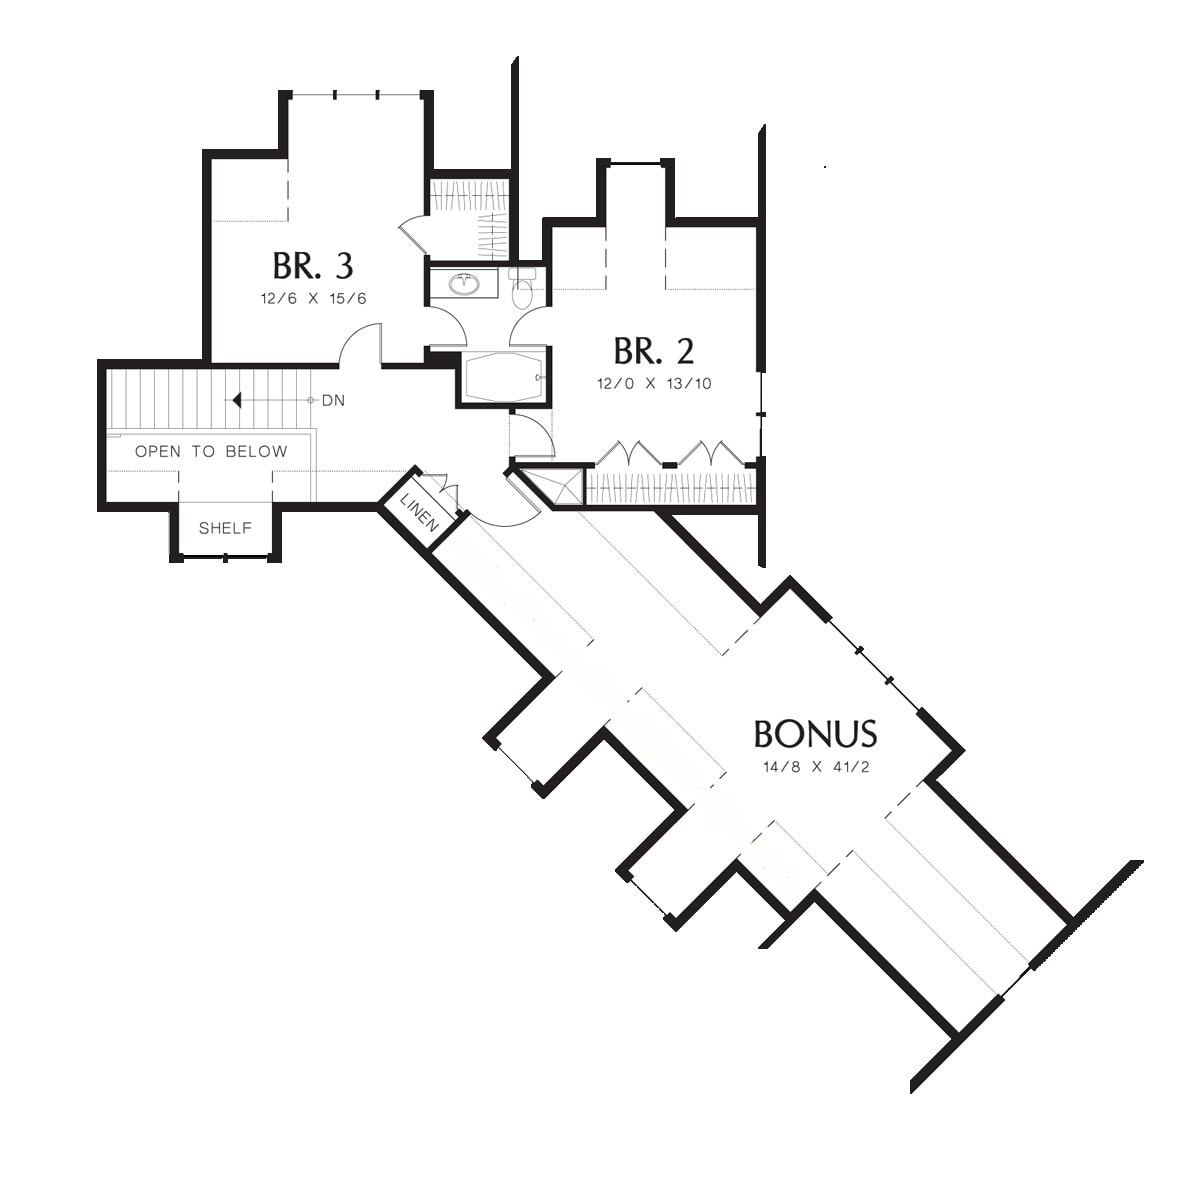 Second level floor plan with two additional bedrooms and a spacious bonus room over the garage.